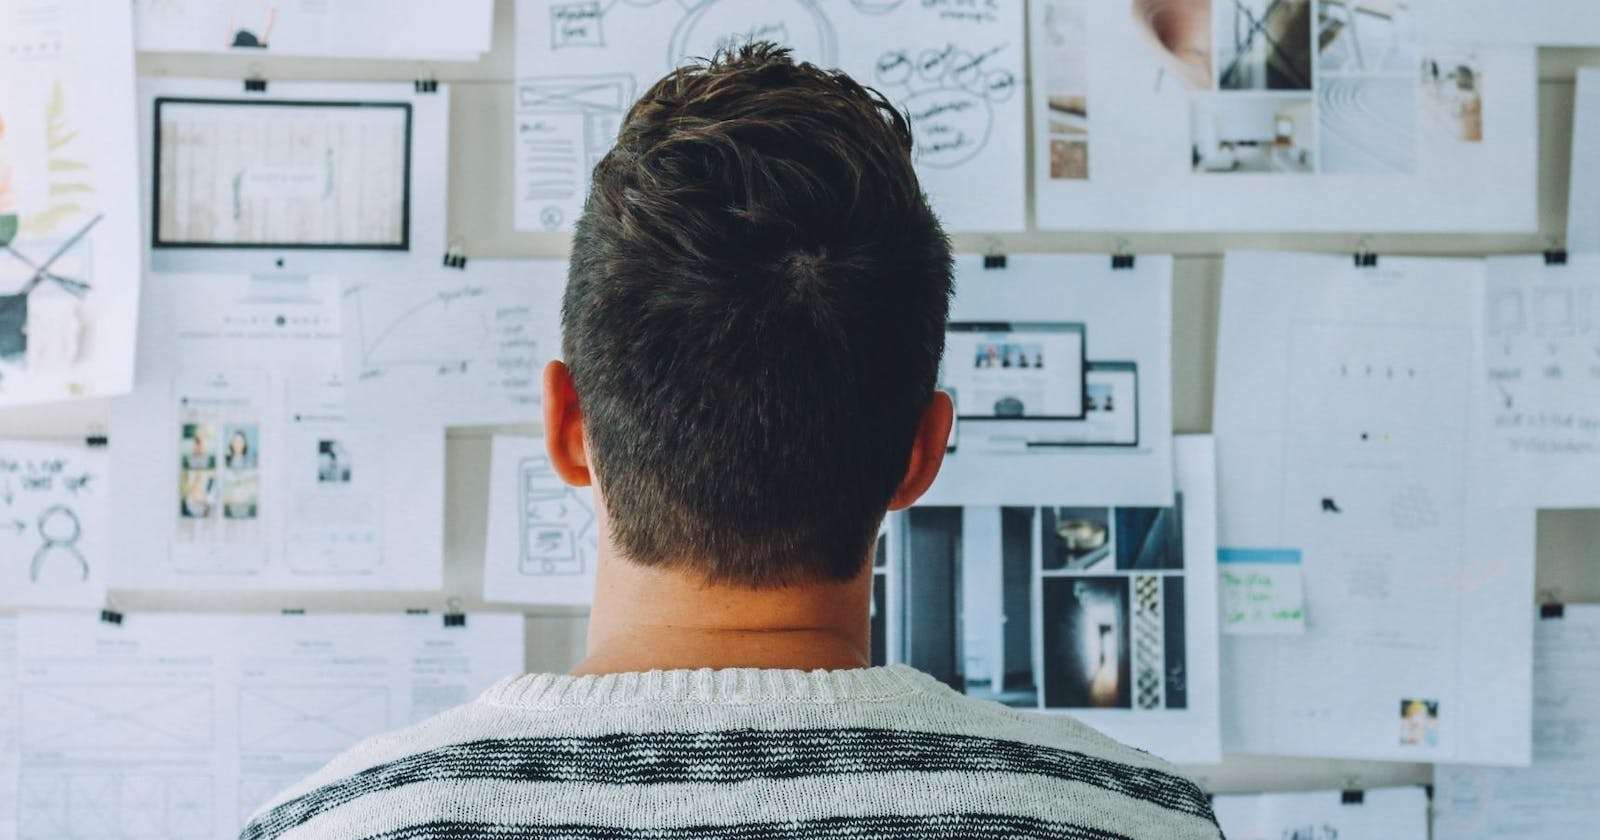 5 Ways For A UI Designer To Come Up With Ideas